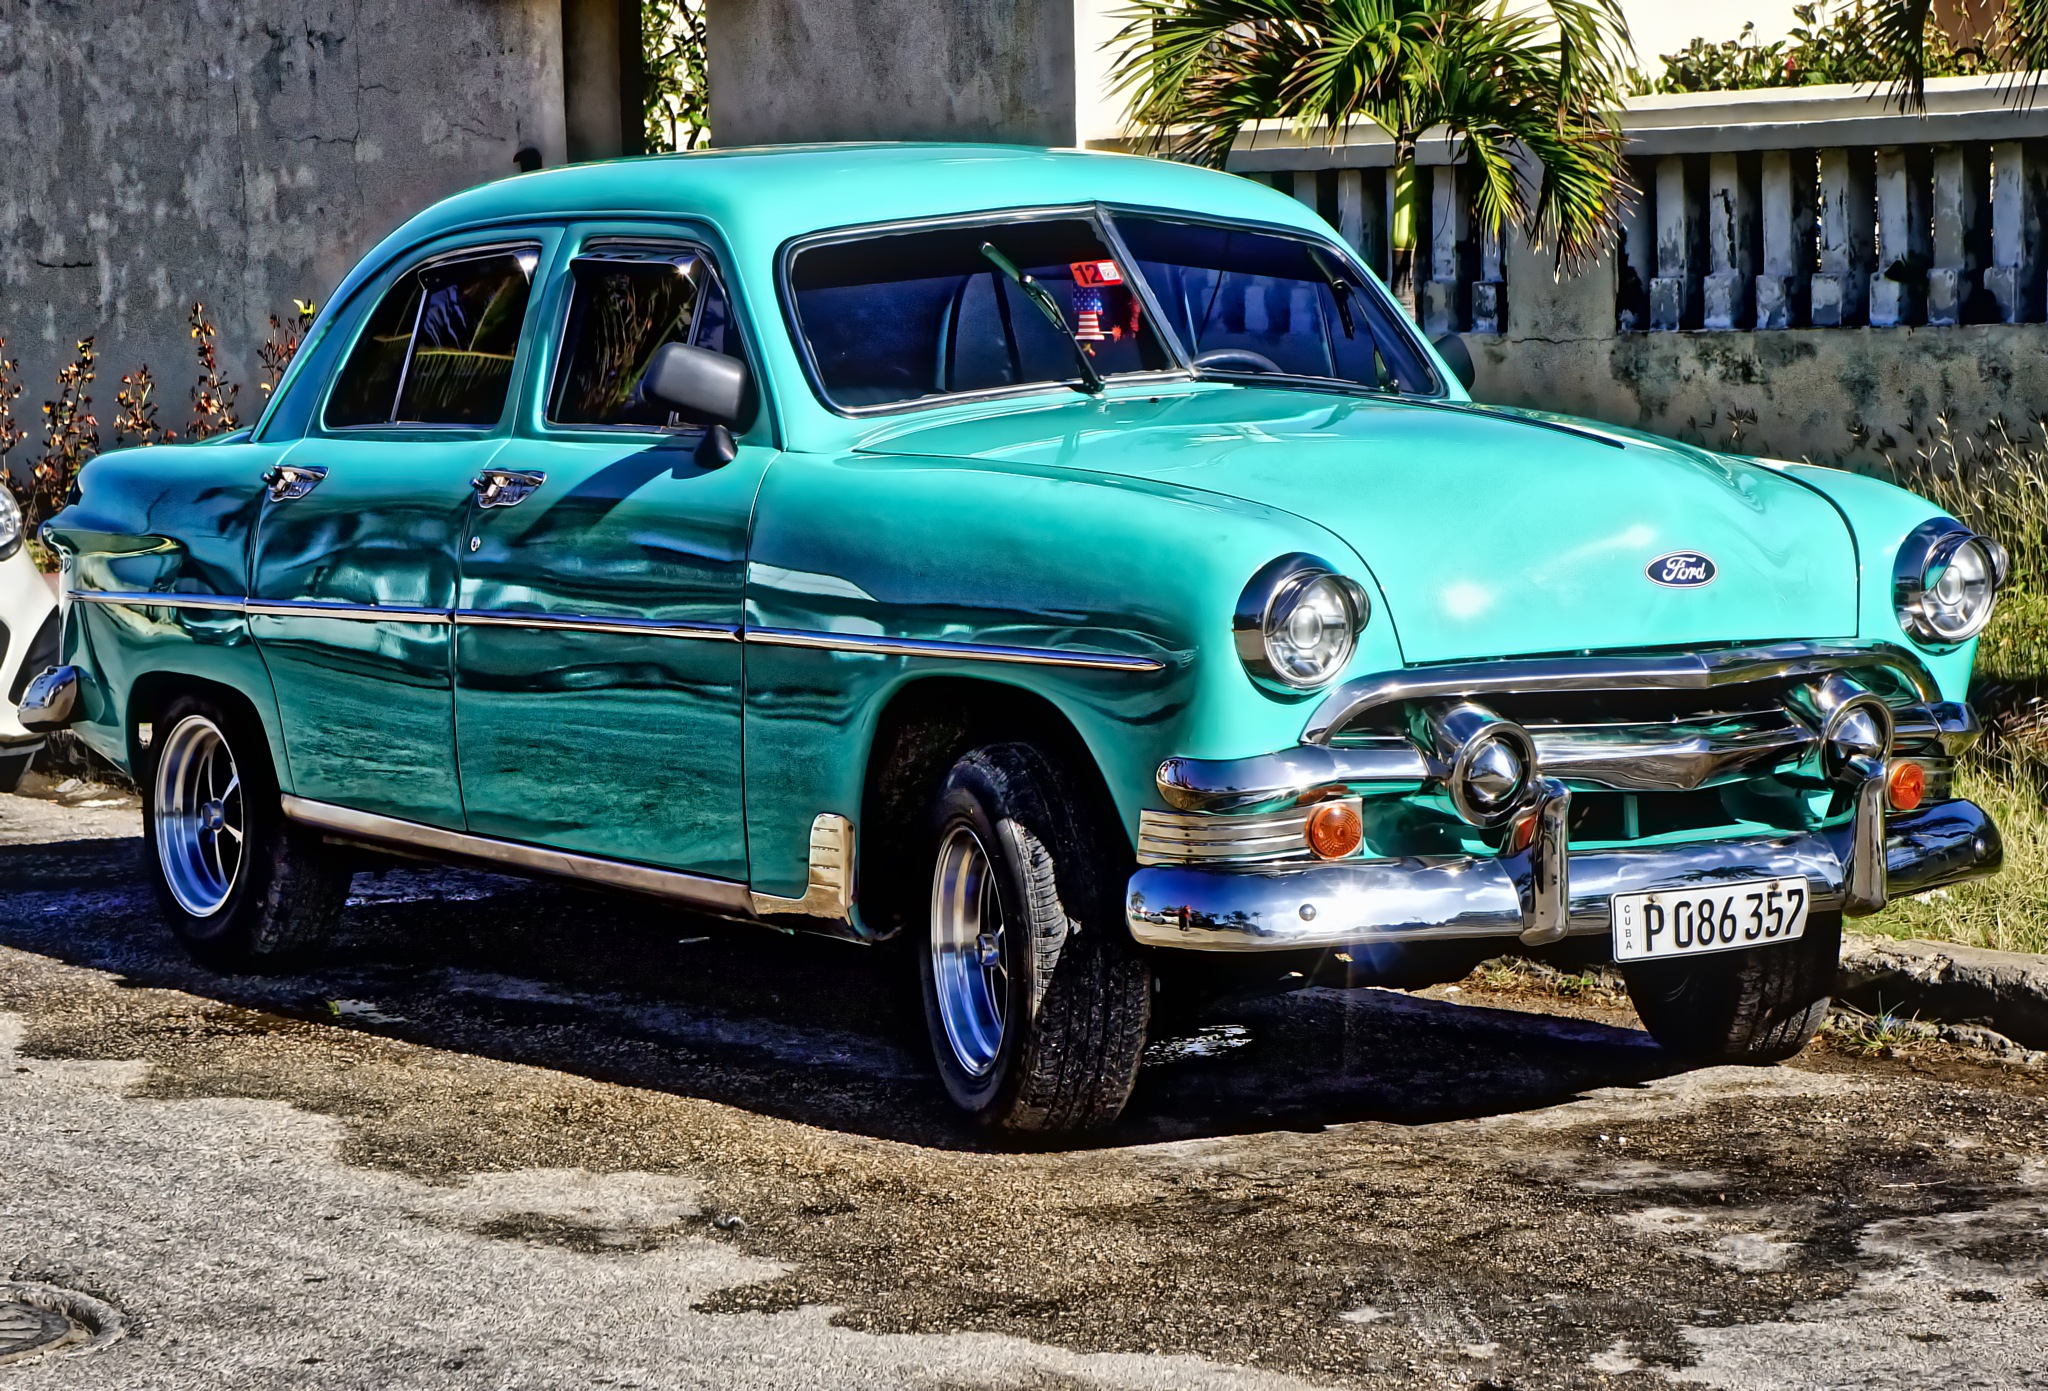 Green Ford by Harrison Hanville